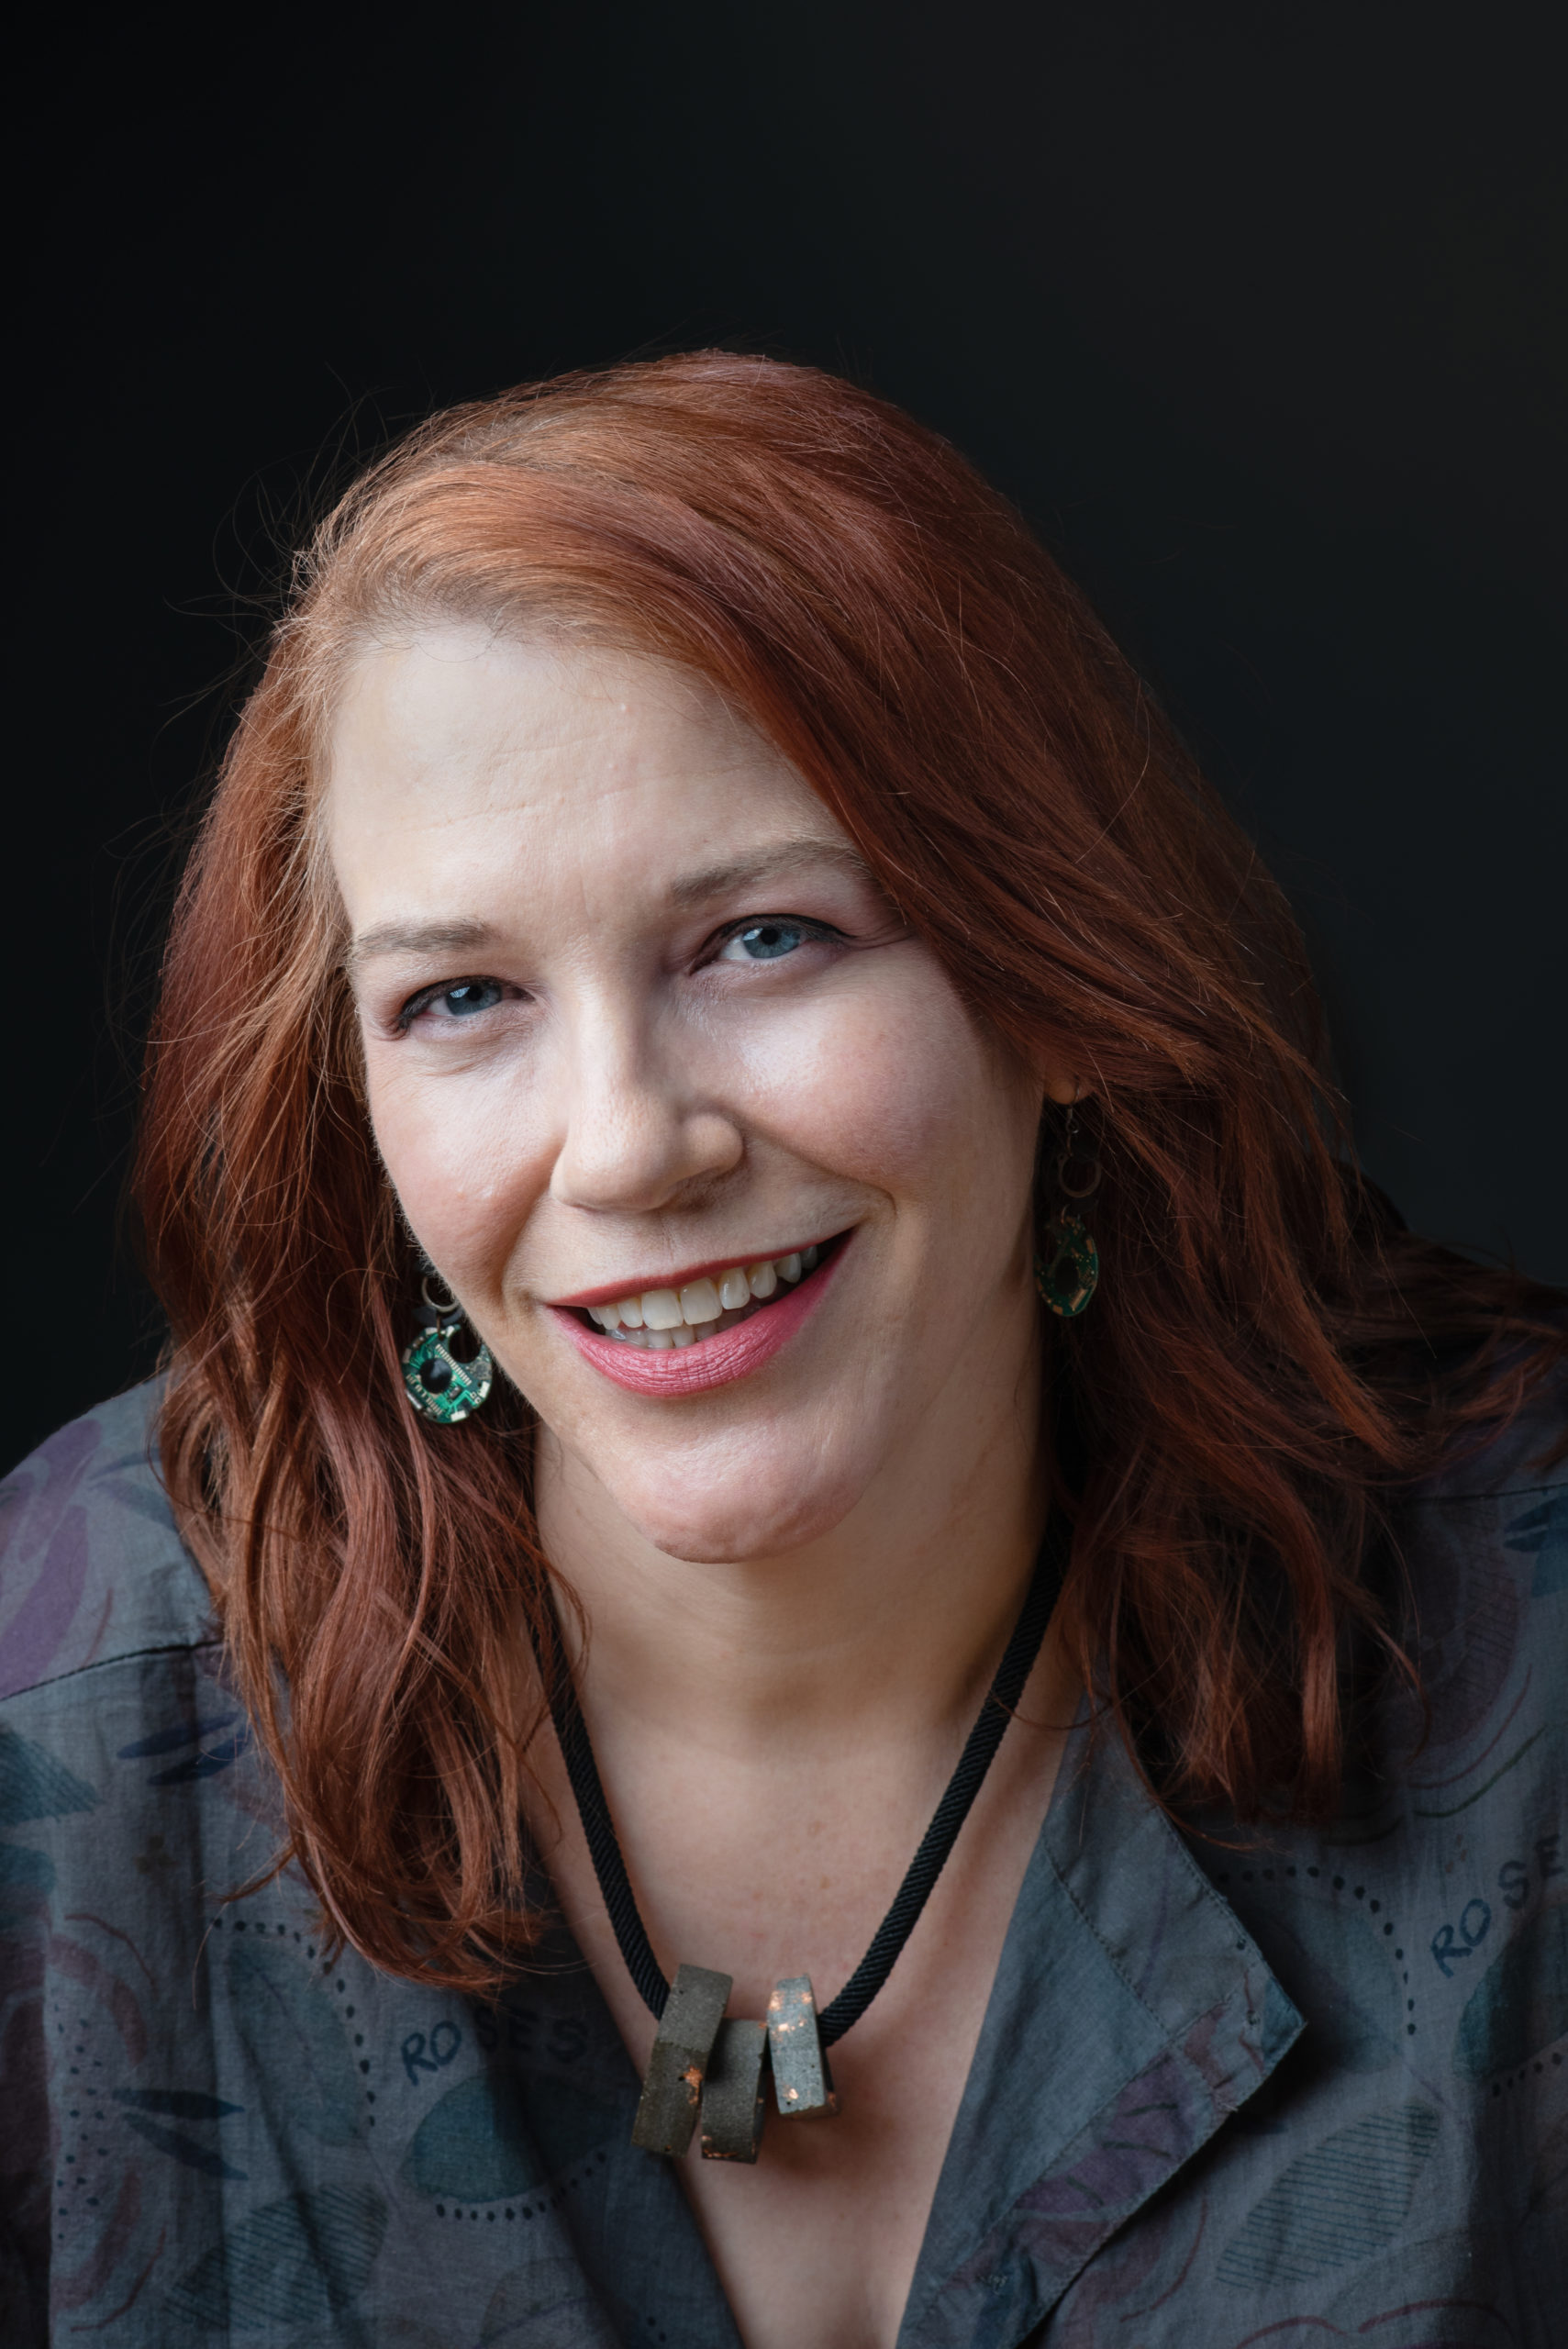 Image shows writer Kelly Robson, smiling, with red hair